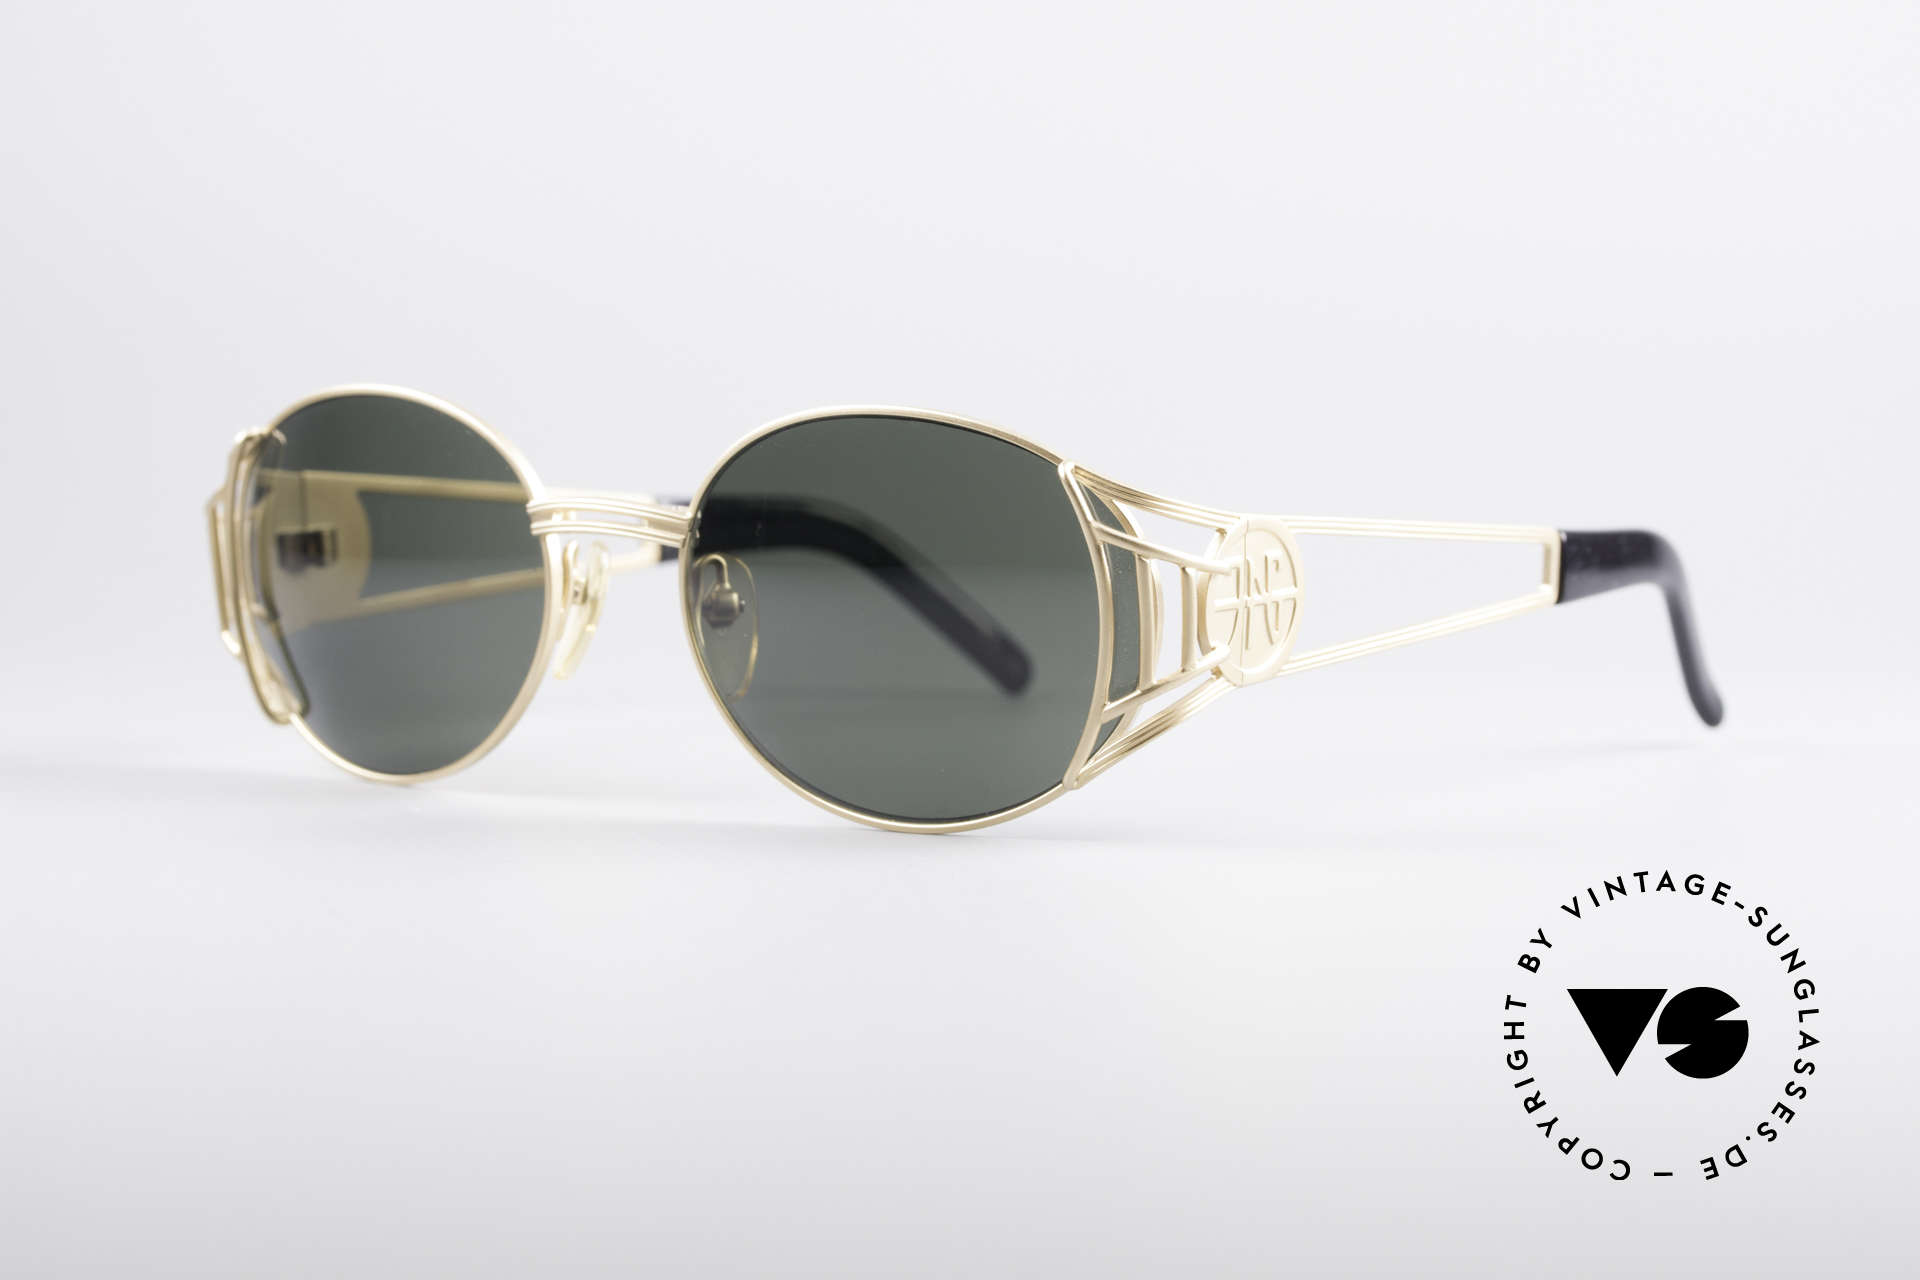 """Jean Paul Gaultier 58-6102 Steampunk Designer Shades, often called as """"Steampunk Shades"""", these days, Made for Men and Women"""